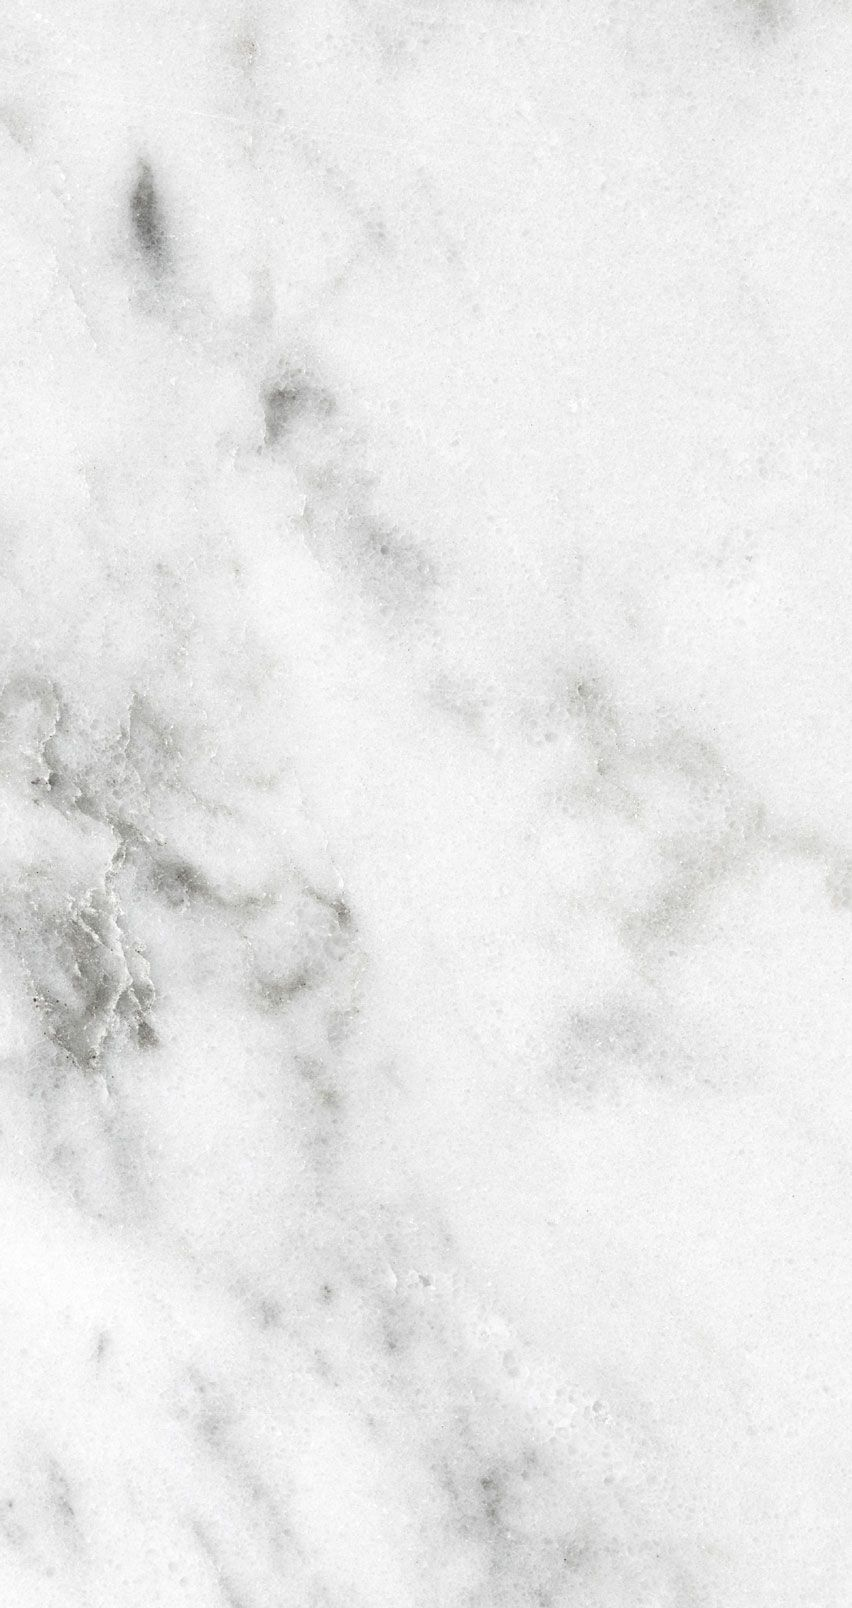 Wallpaper_iPhone6WhiteMarble.jpg 852×1,608 pixels iPhone